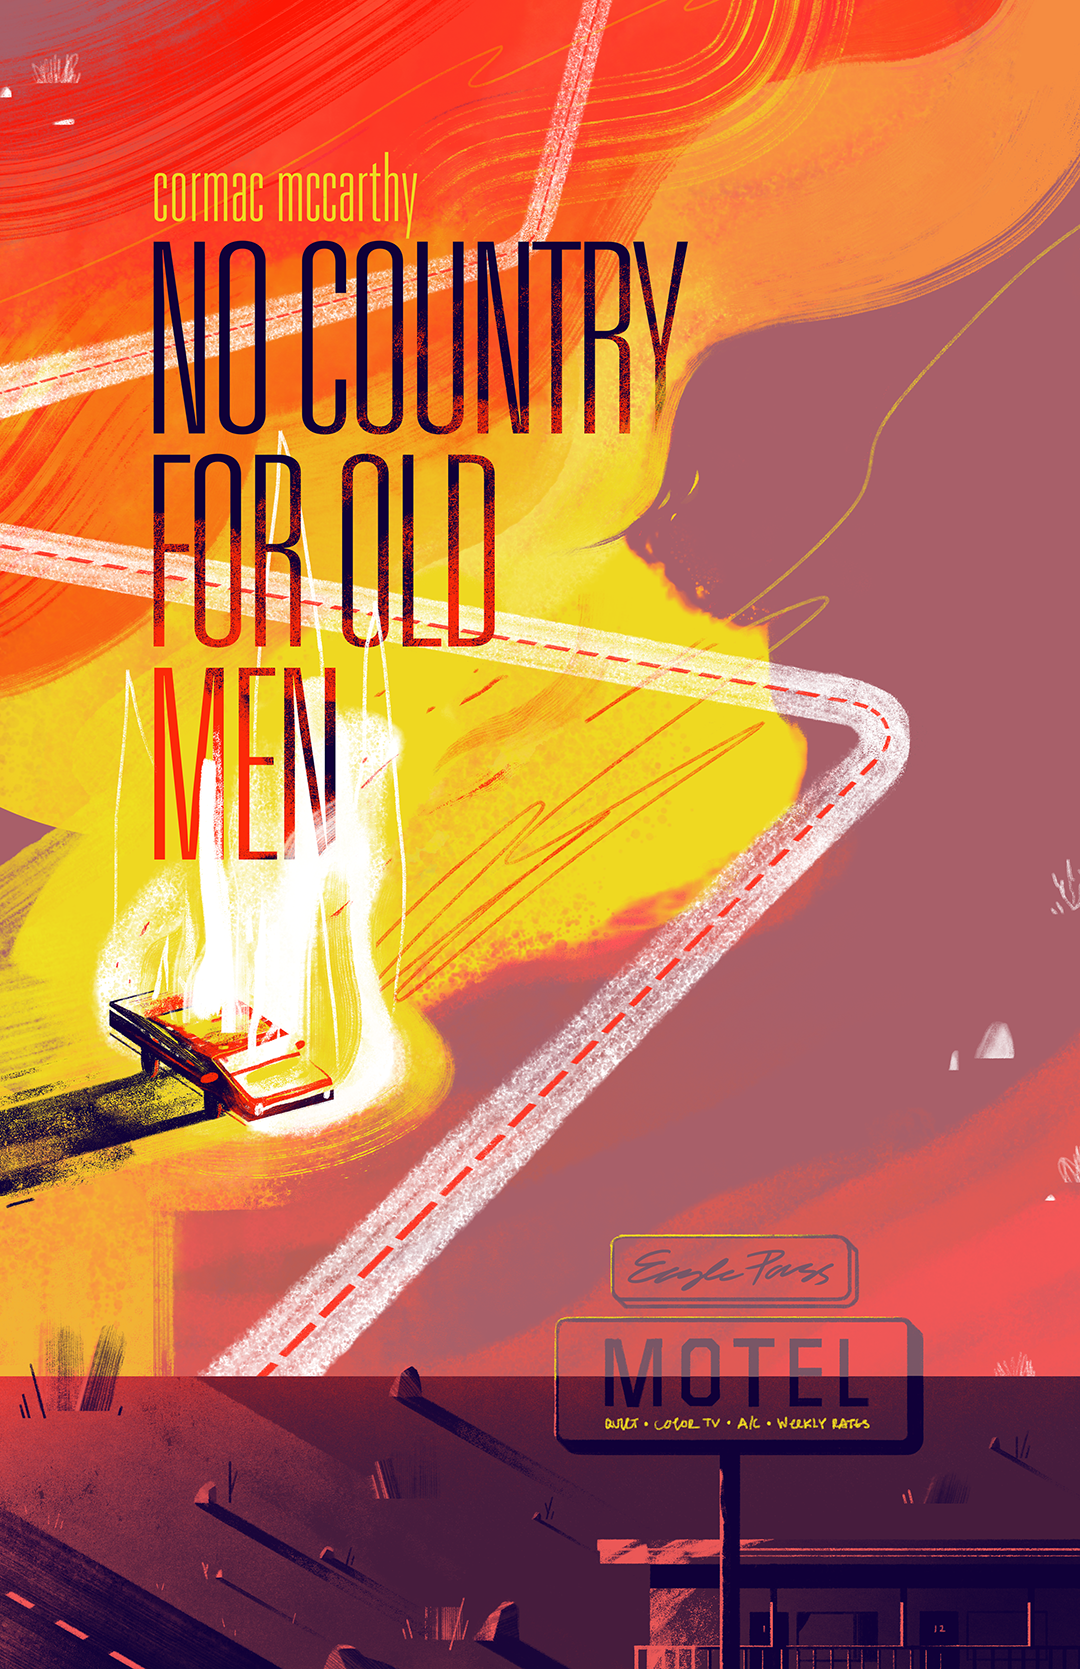 GirlsclubAsia-Illustrator-SaraWong-no-country-for-old-men_red_small